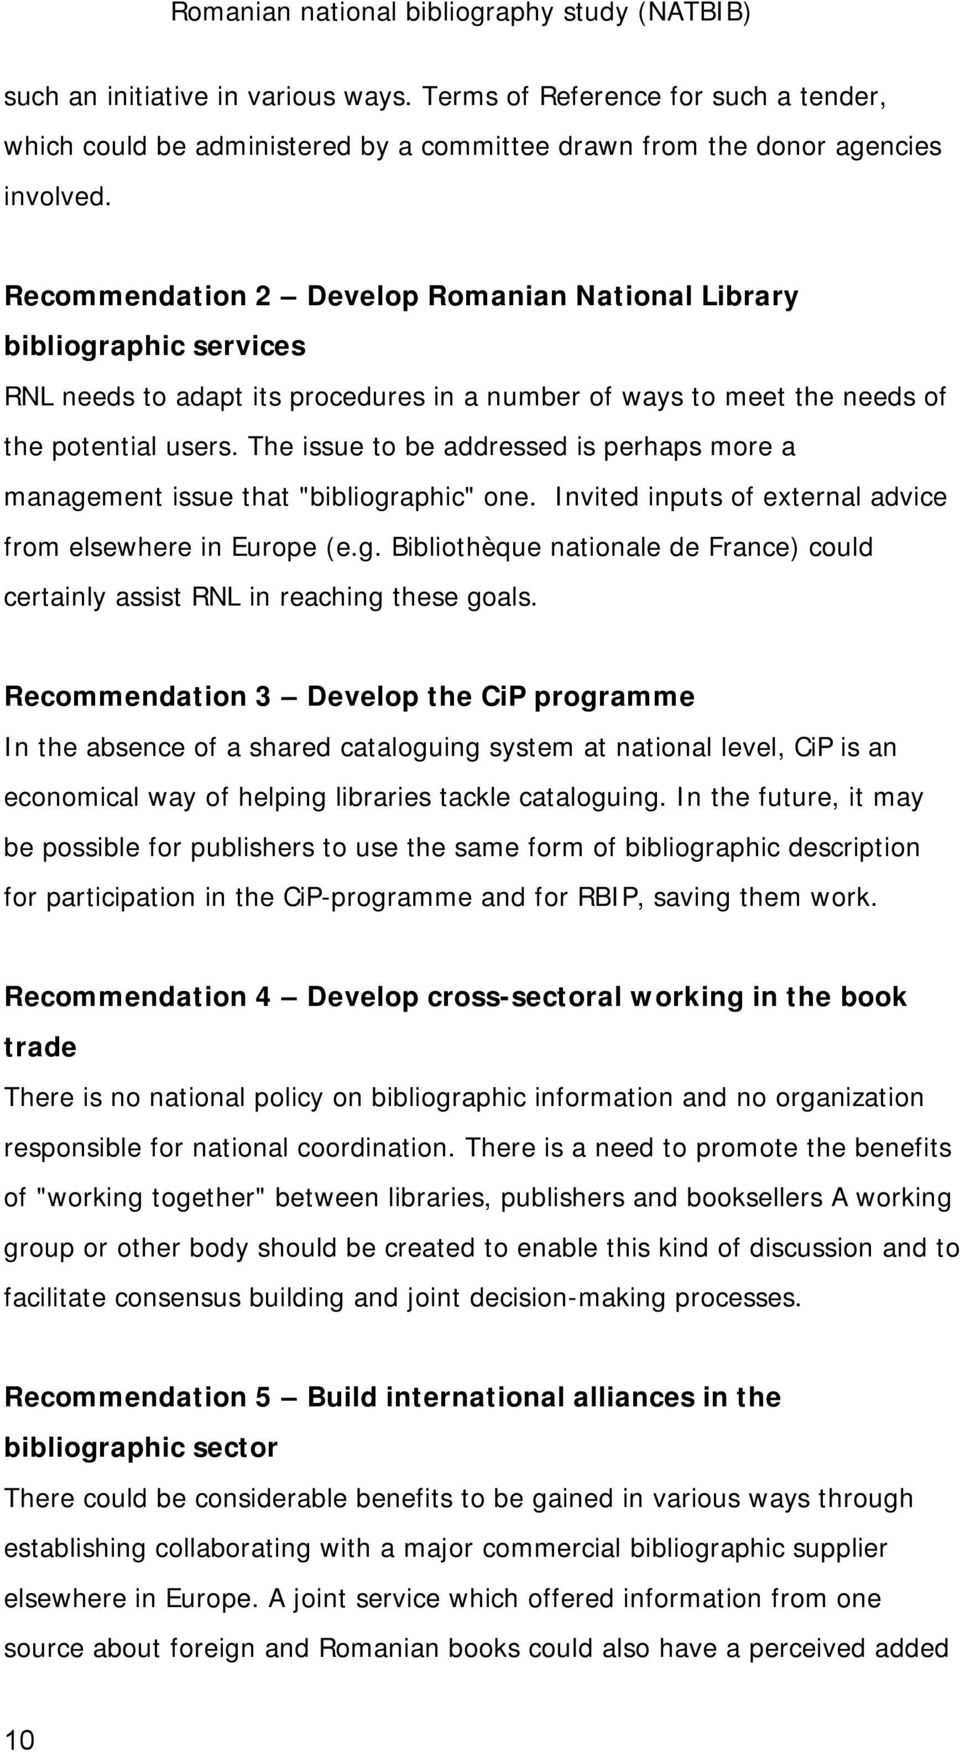 "The issue to be addressed is perhaps more a management issue that ""bibliographic"" one. Invited inputs of external advice from elsewhere in Europe (e.g. Bibliothèque nationale de France) could certainly assist RNL in reaching these goals."